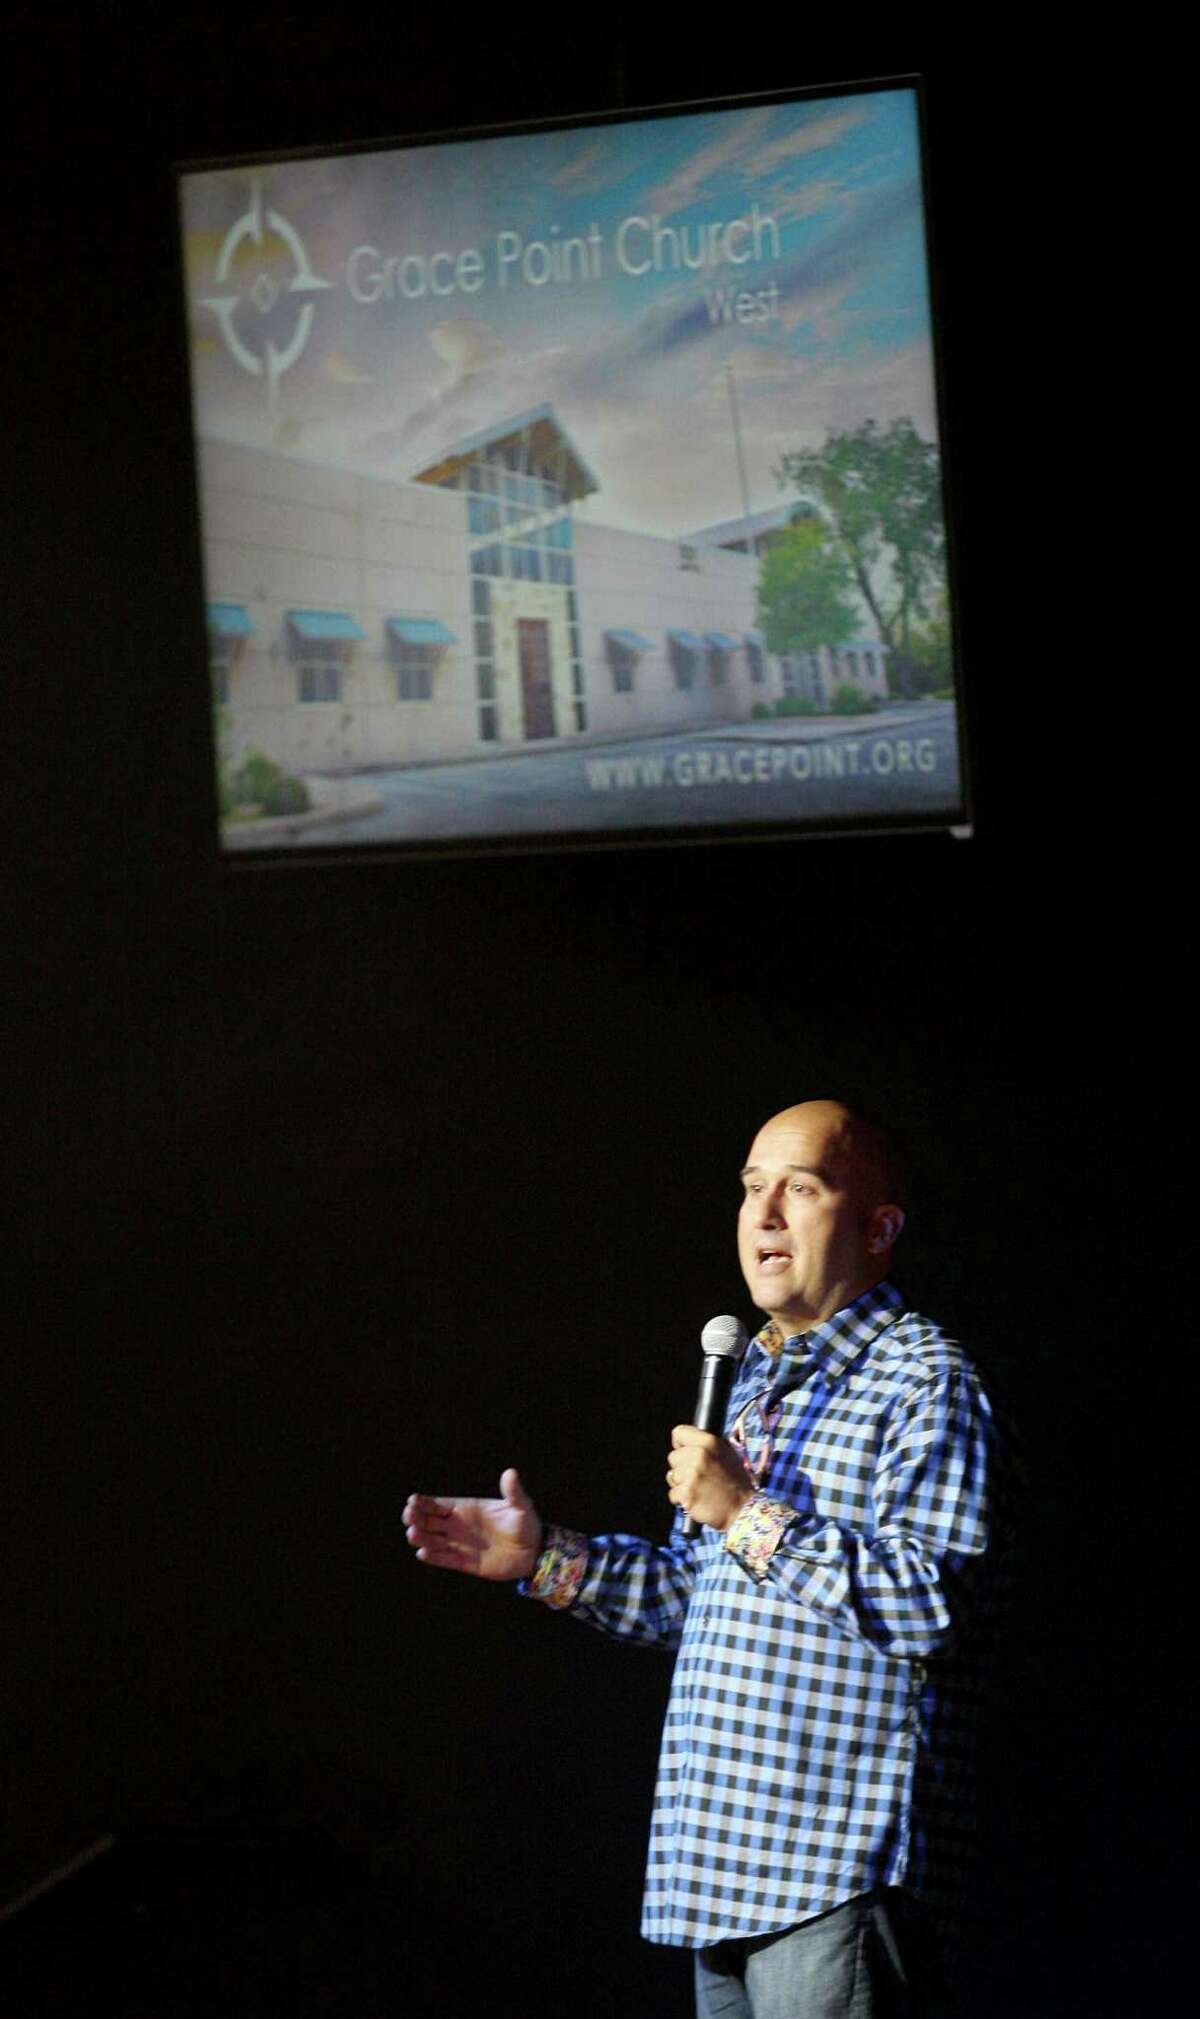 Pastor Jeff Harris of Grace Point Church West delivers his sermon Aug. 10 during one of the first services at the new establishment off of Loop 1604 and Leslie Road. The grand opening of the new church is planned today.